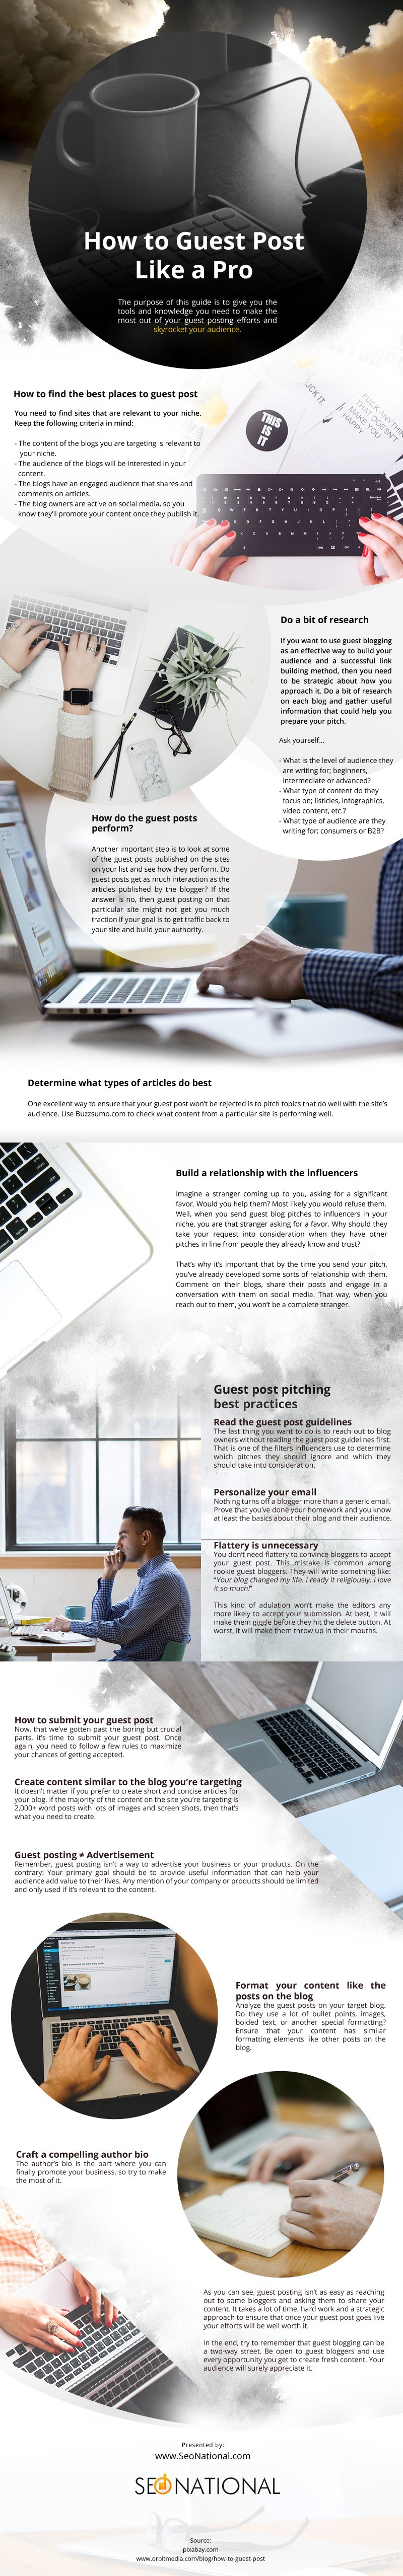 How to Guest Post Like a Pro [infographic]